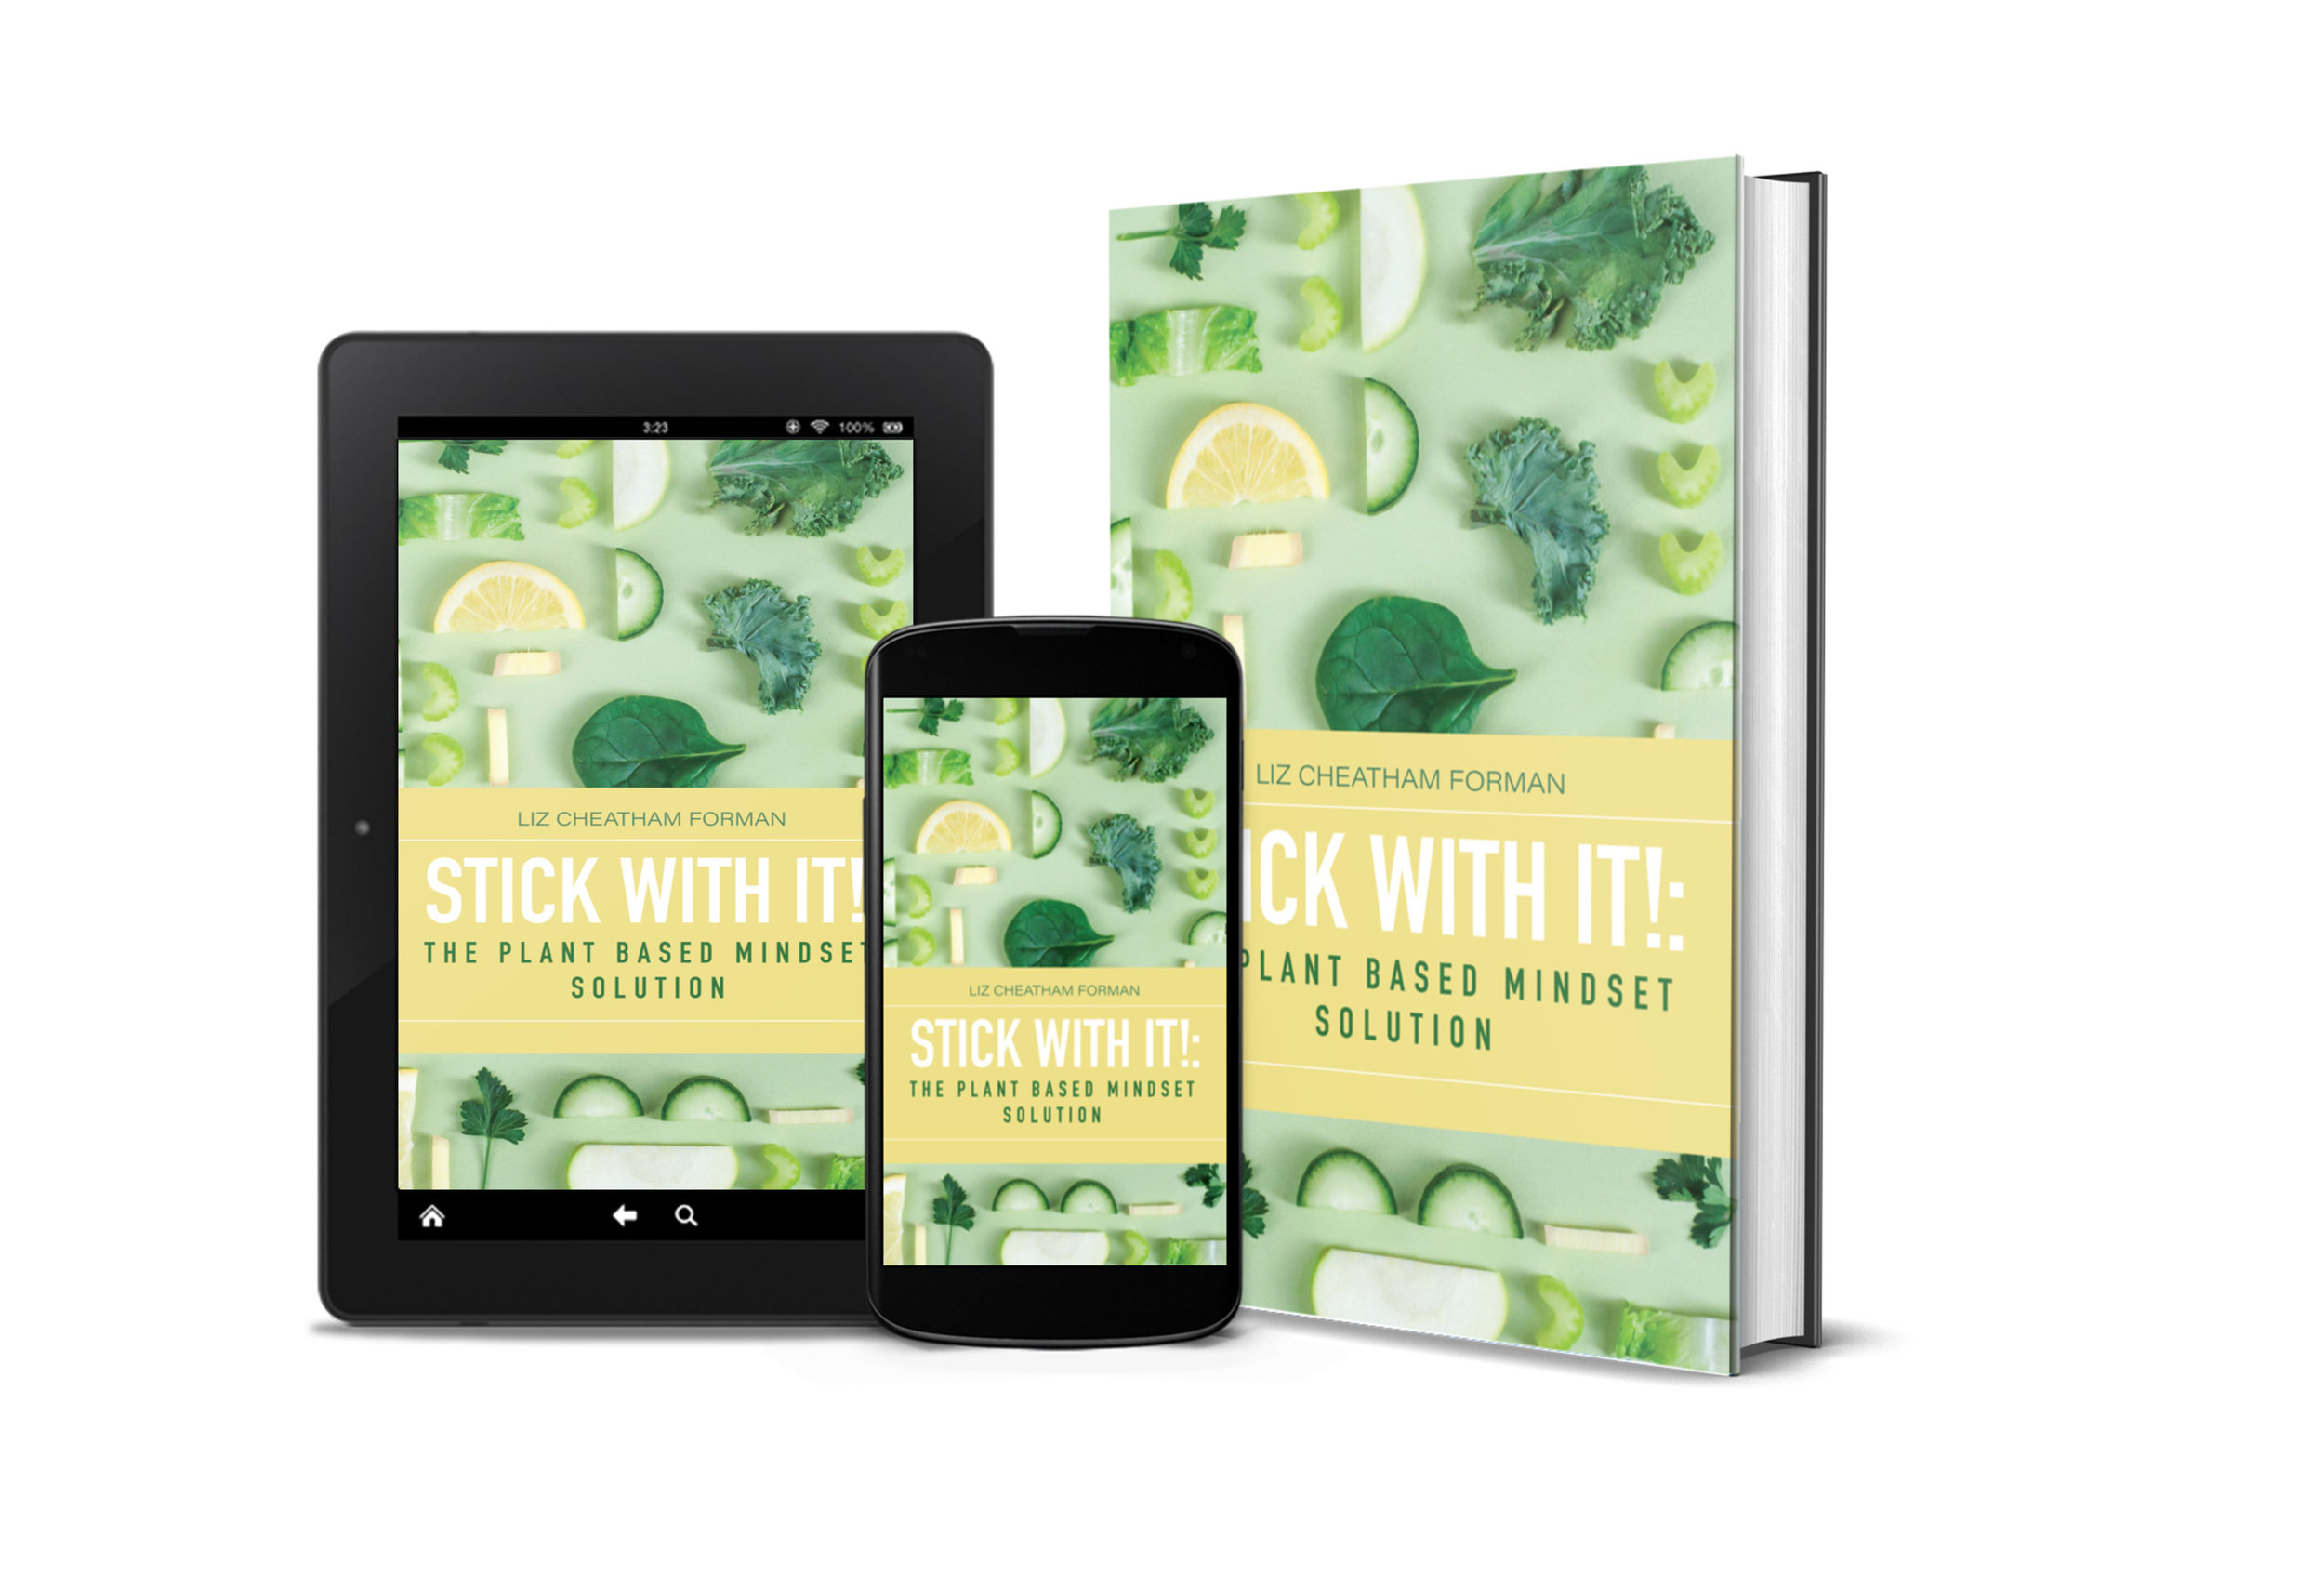 Get Your Copy Today! - Grab your digital copy of Stick With It: The Plant Based Mindset Solution on Amazon.